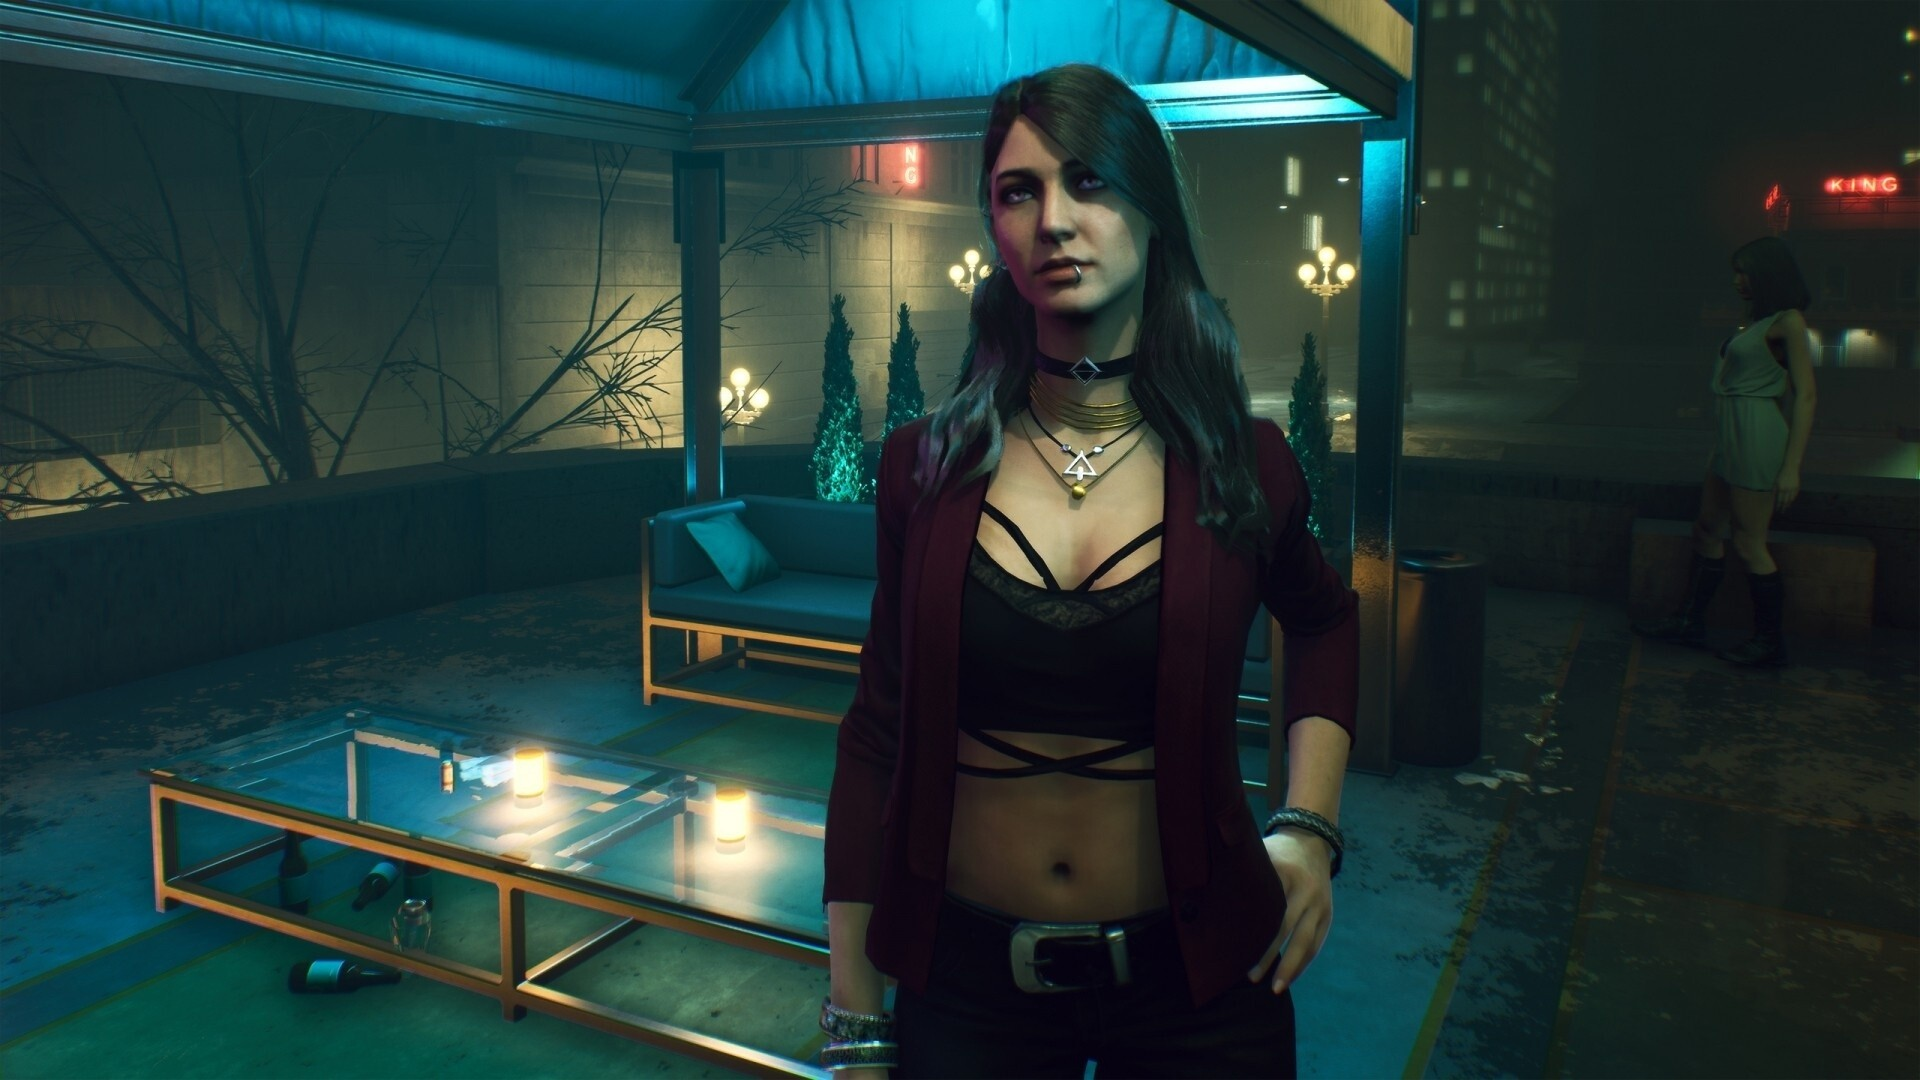 Скриншот из трейлера Vampire: The Masquerade – Bloodlines 2